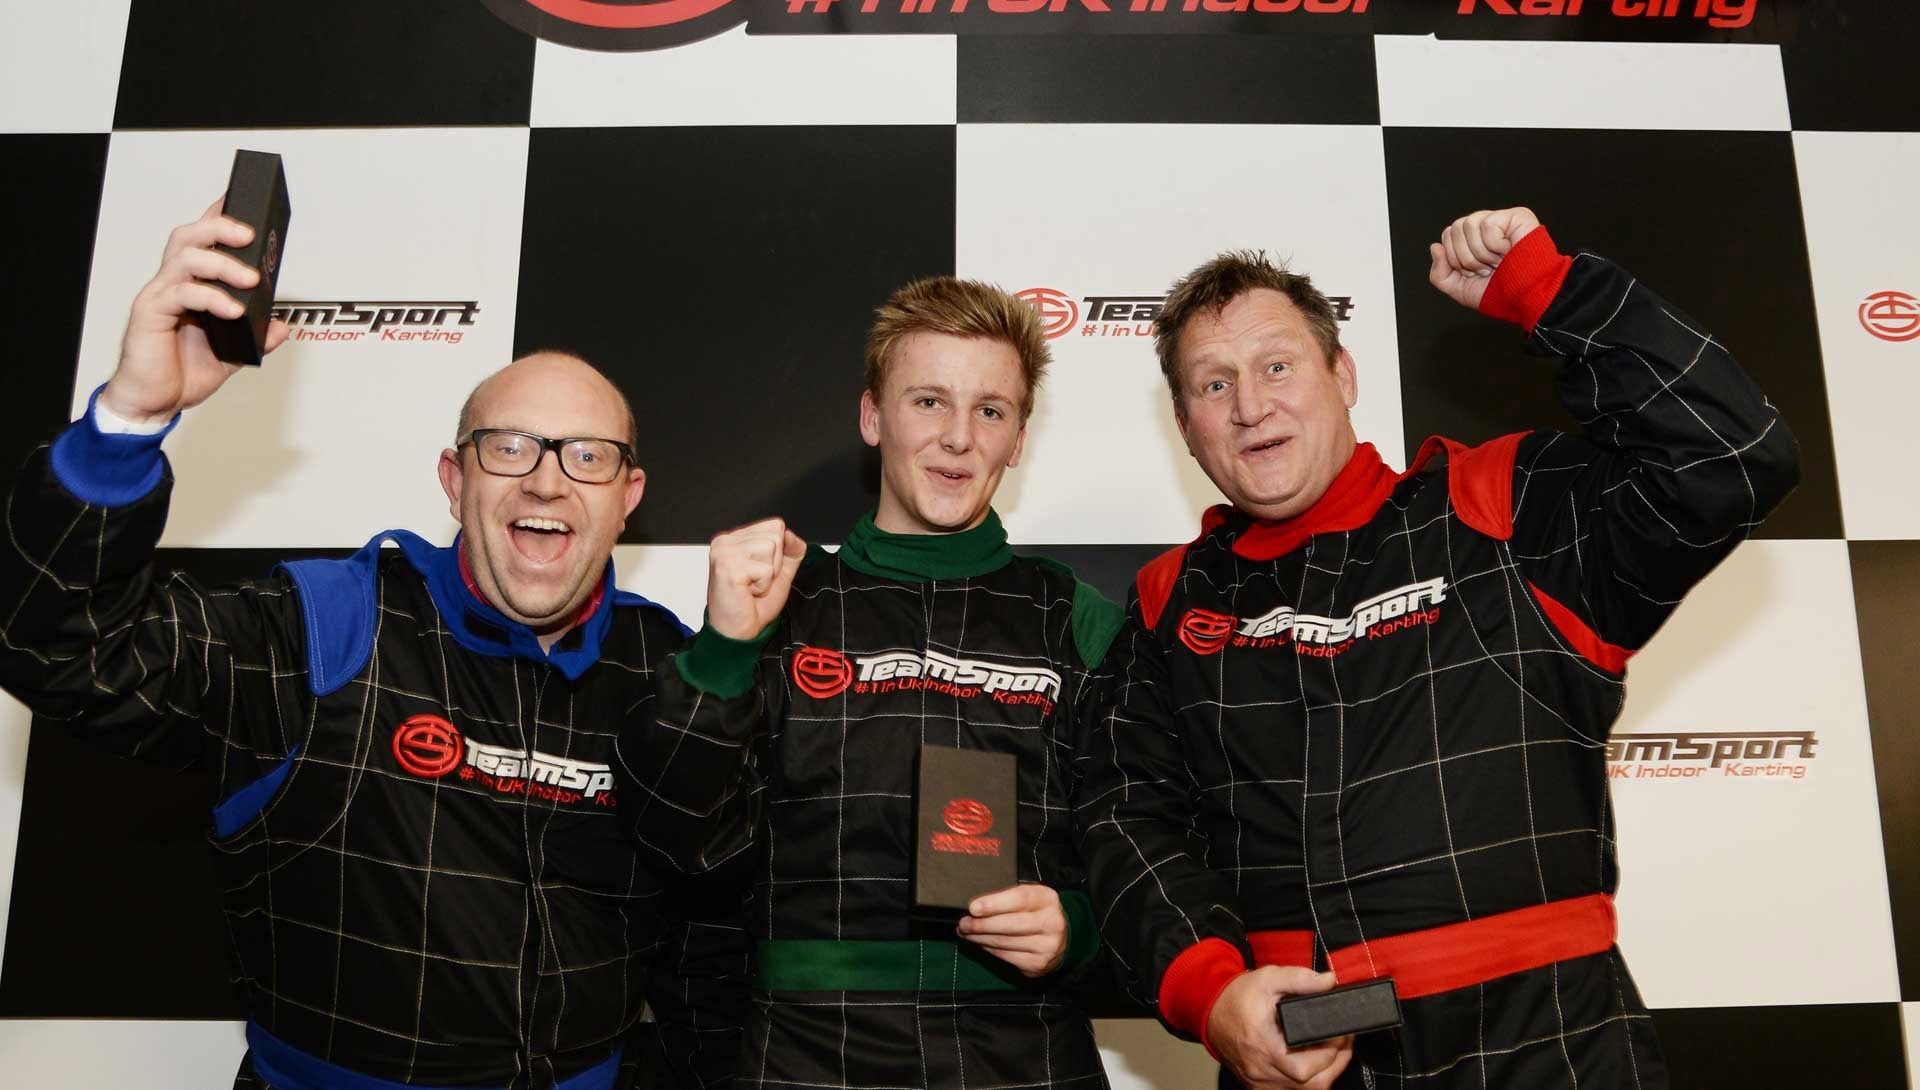 TeamSport_Gallery_Go_Karting_Warrington_1920x1090-min_3.jpg